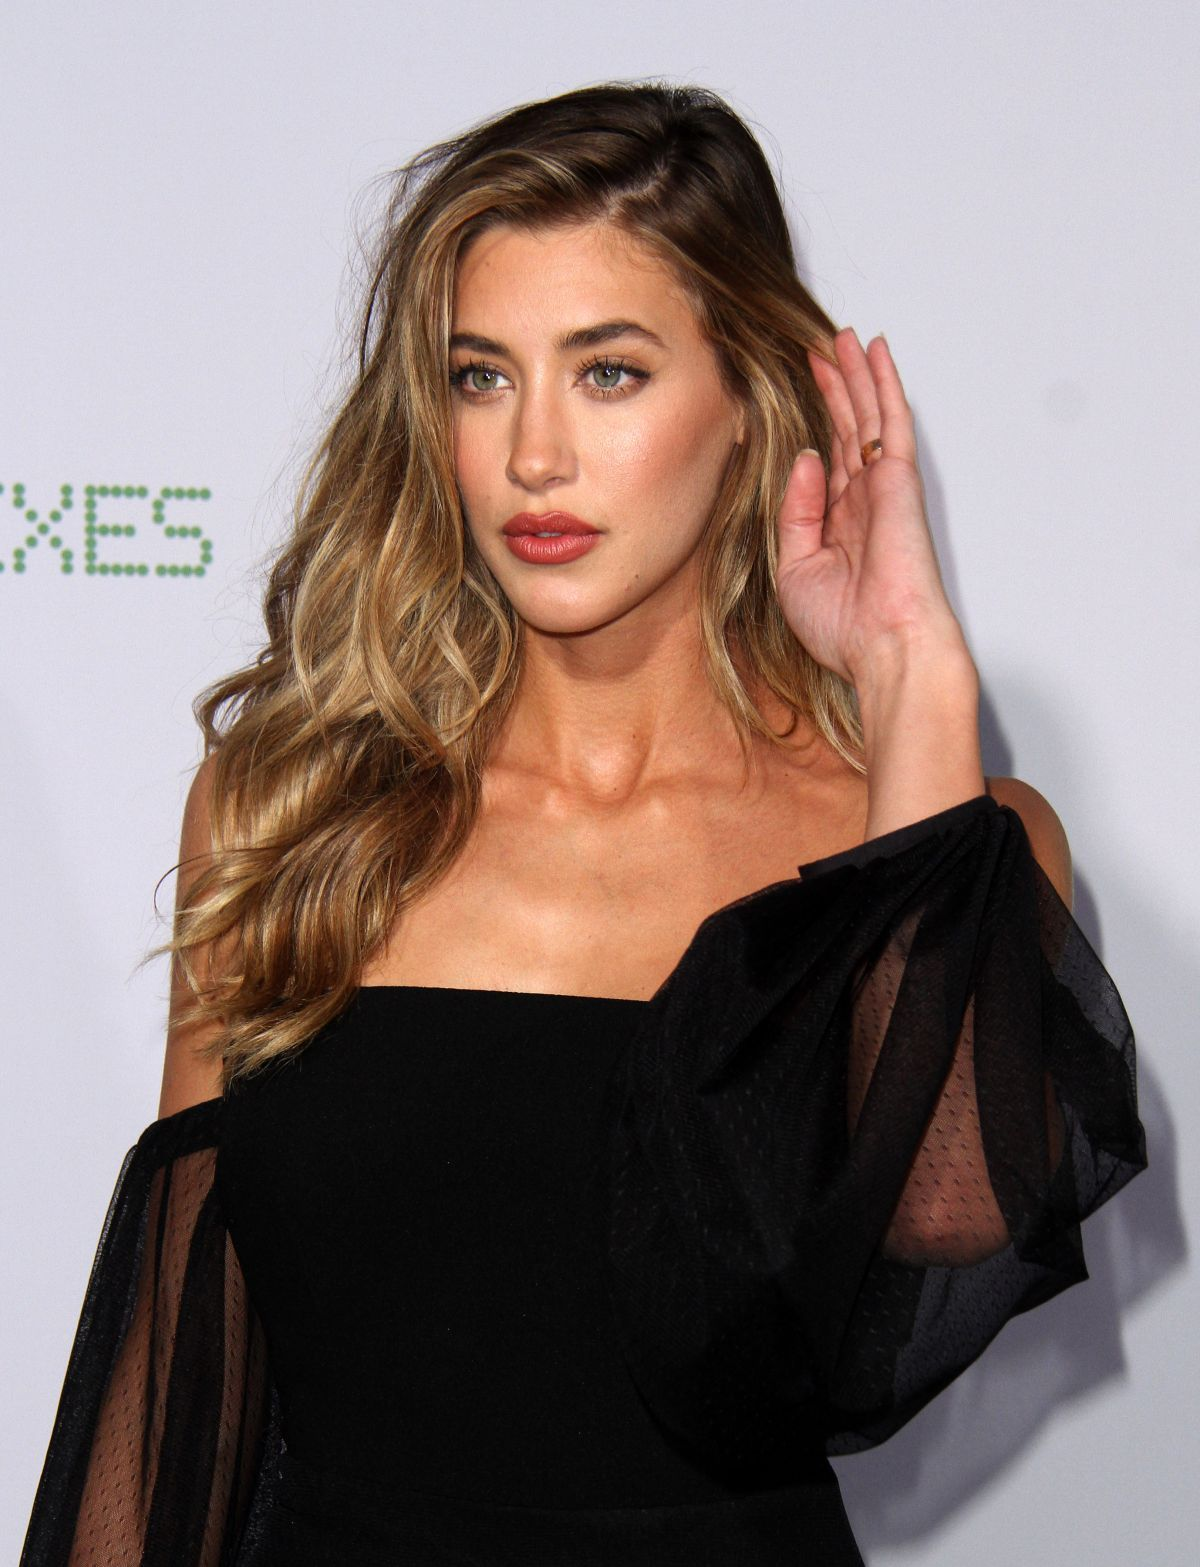 Paparazzi Charly Jordan naked (95 photo), Topless, Bikini, Instagram, cameltoe 2019